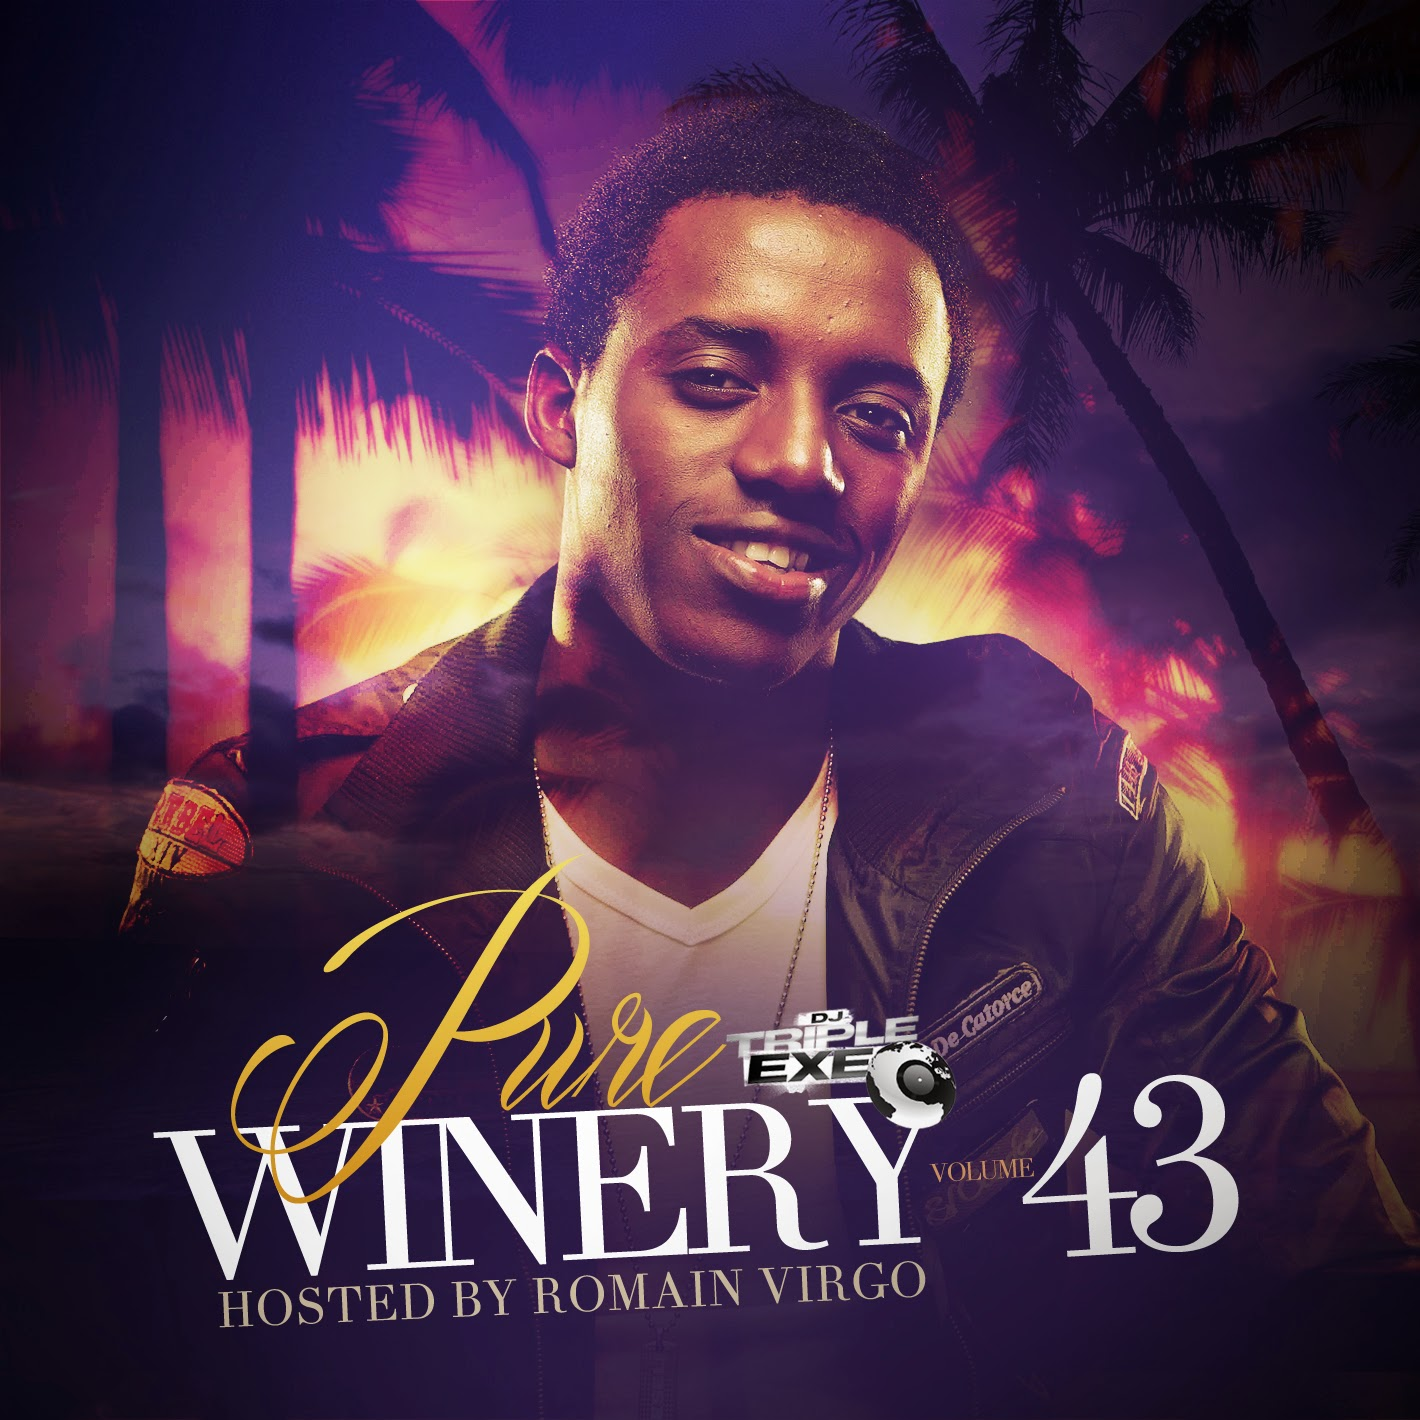 DJ Triple Exe - Pure Winery 43